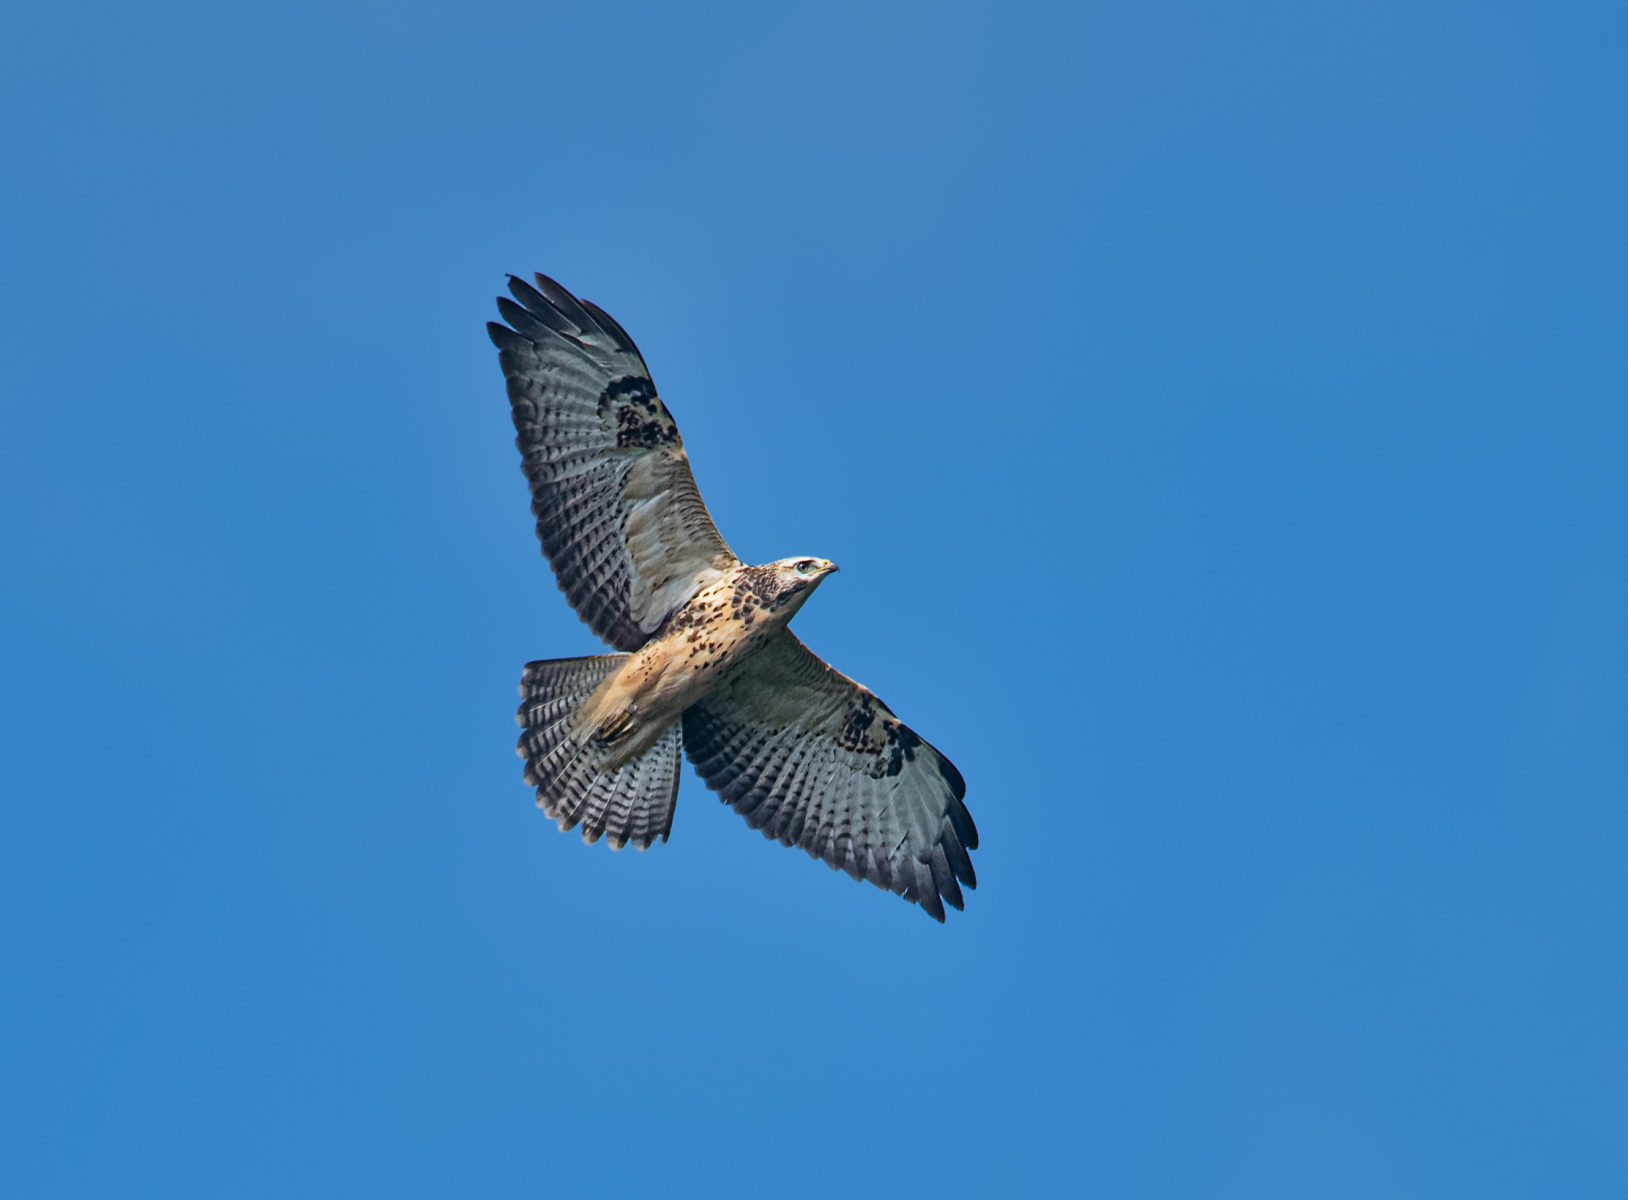 common buzzard soaring high with spread wings